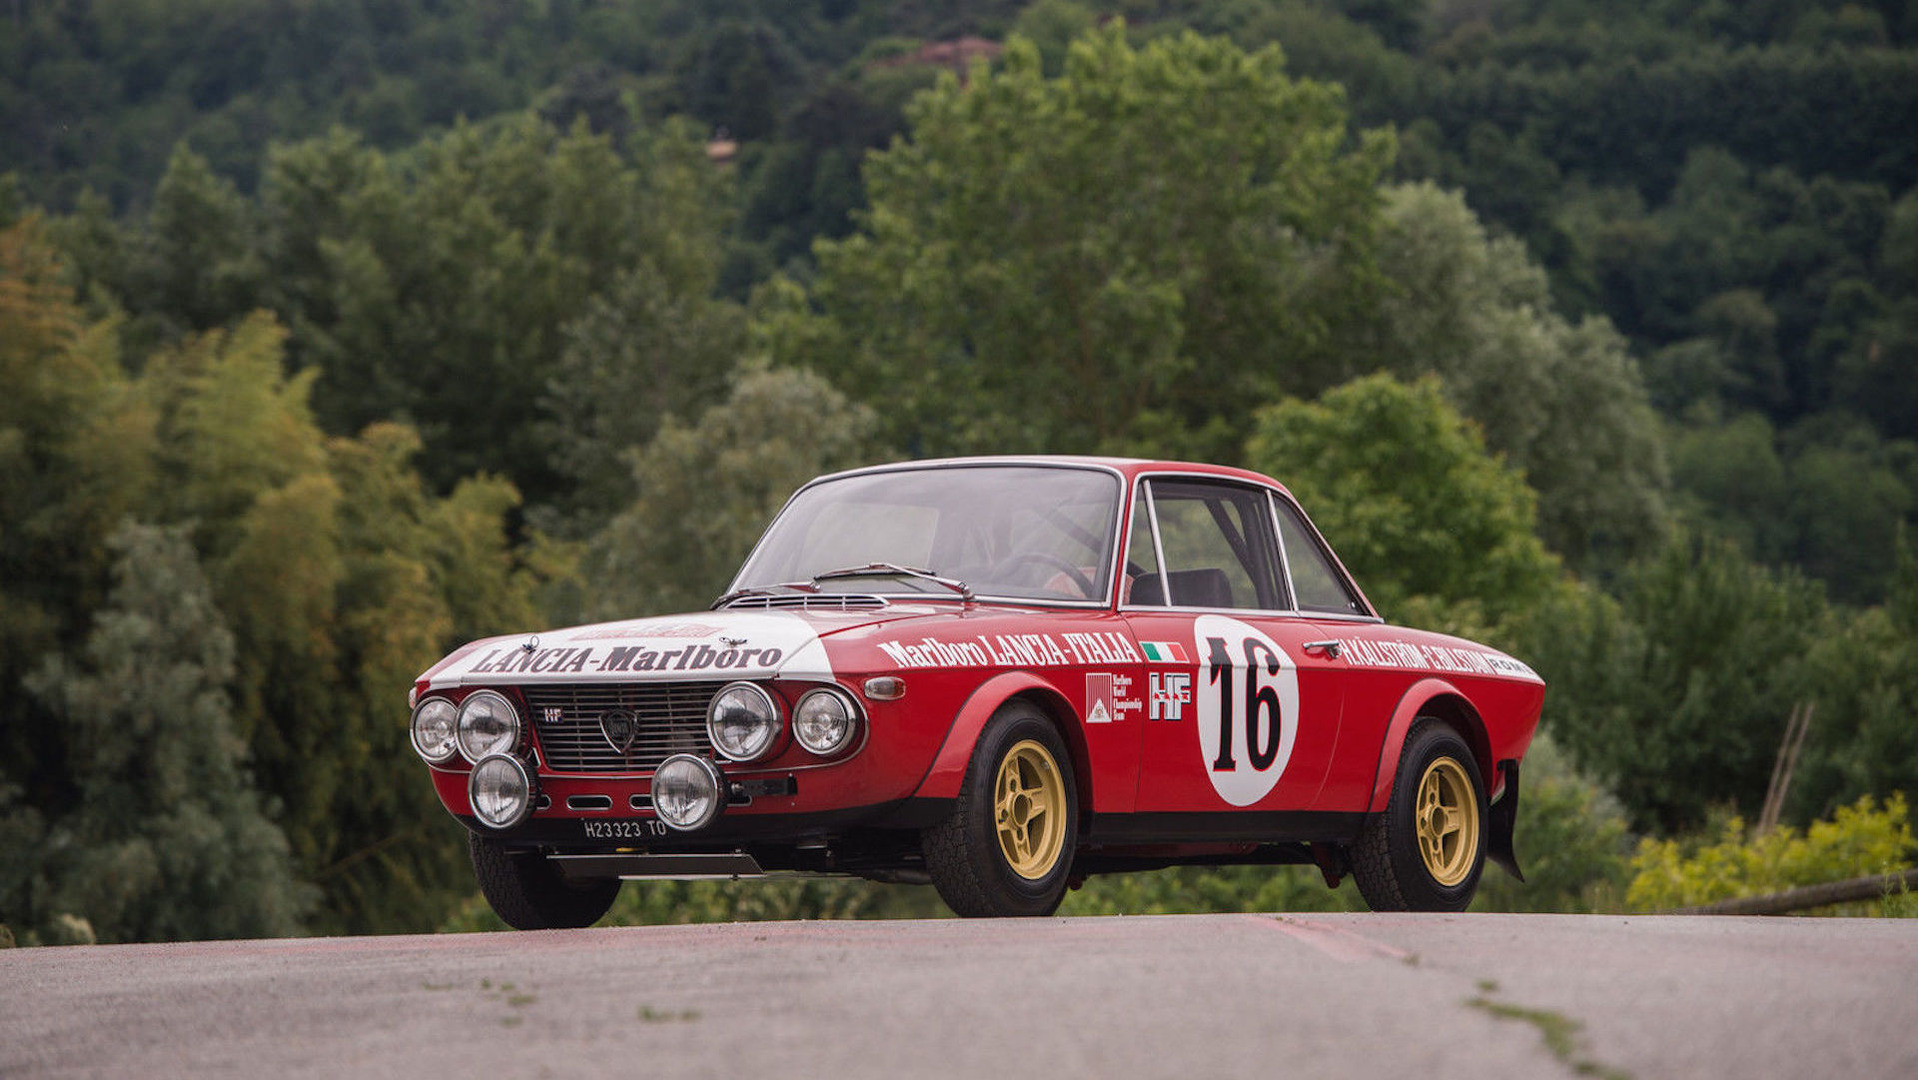 1970 Lancia Fulvia rally car for sale on eBay